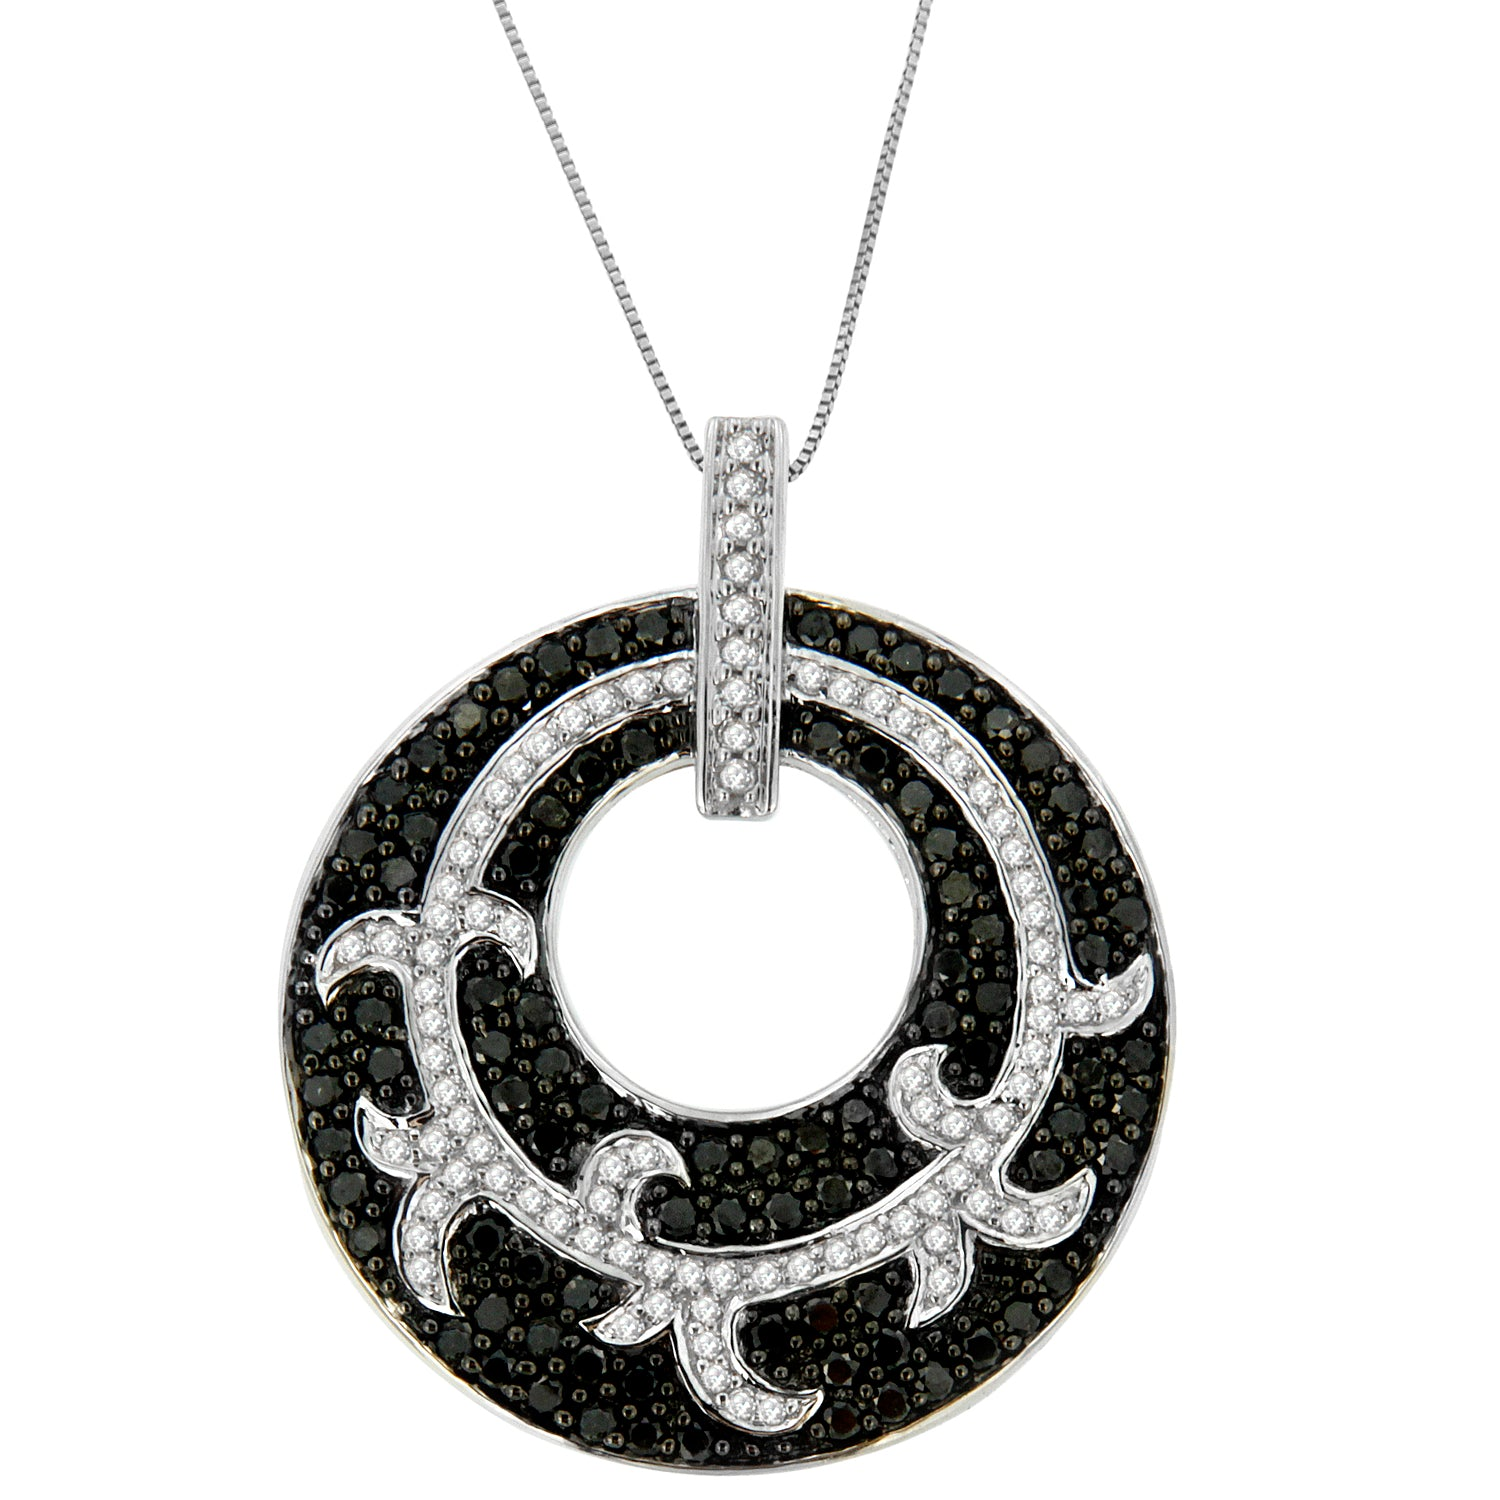 Black Diamond Medallion Circle Pendant Necklace